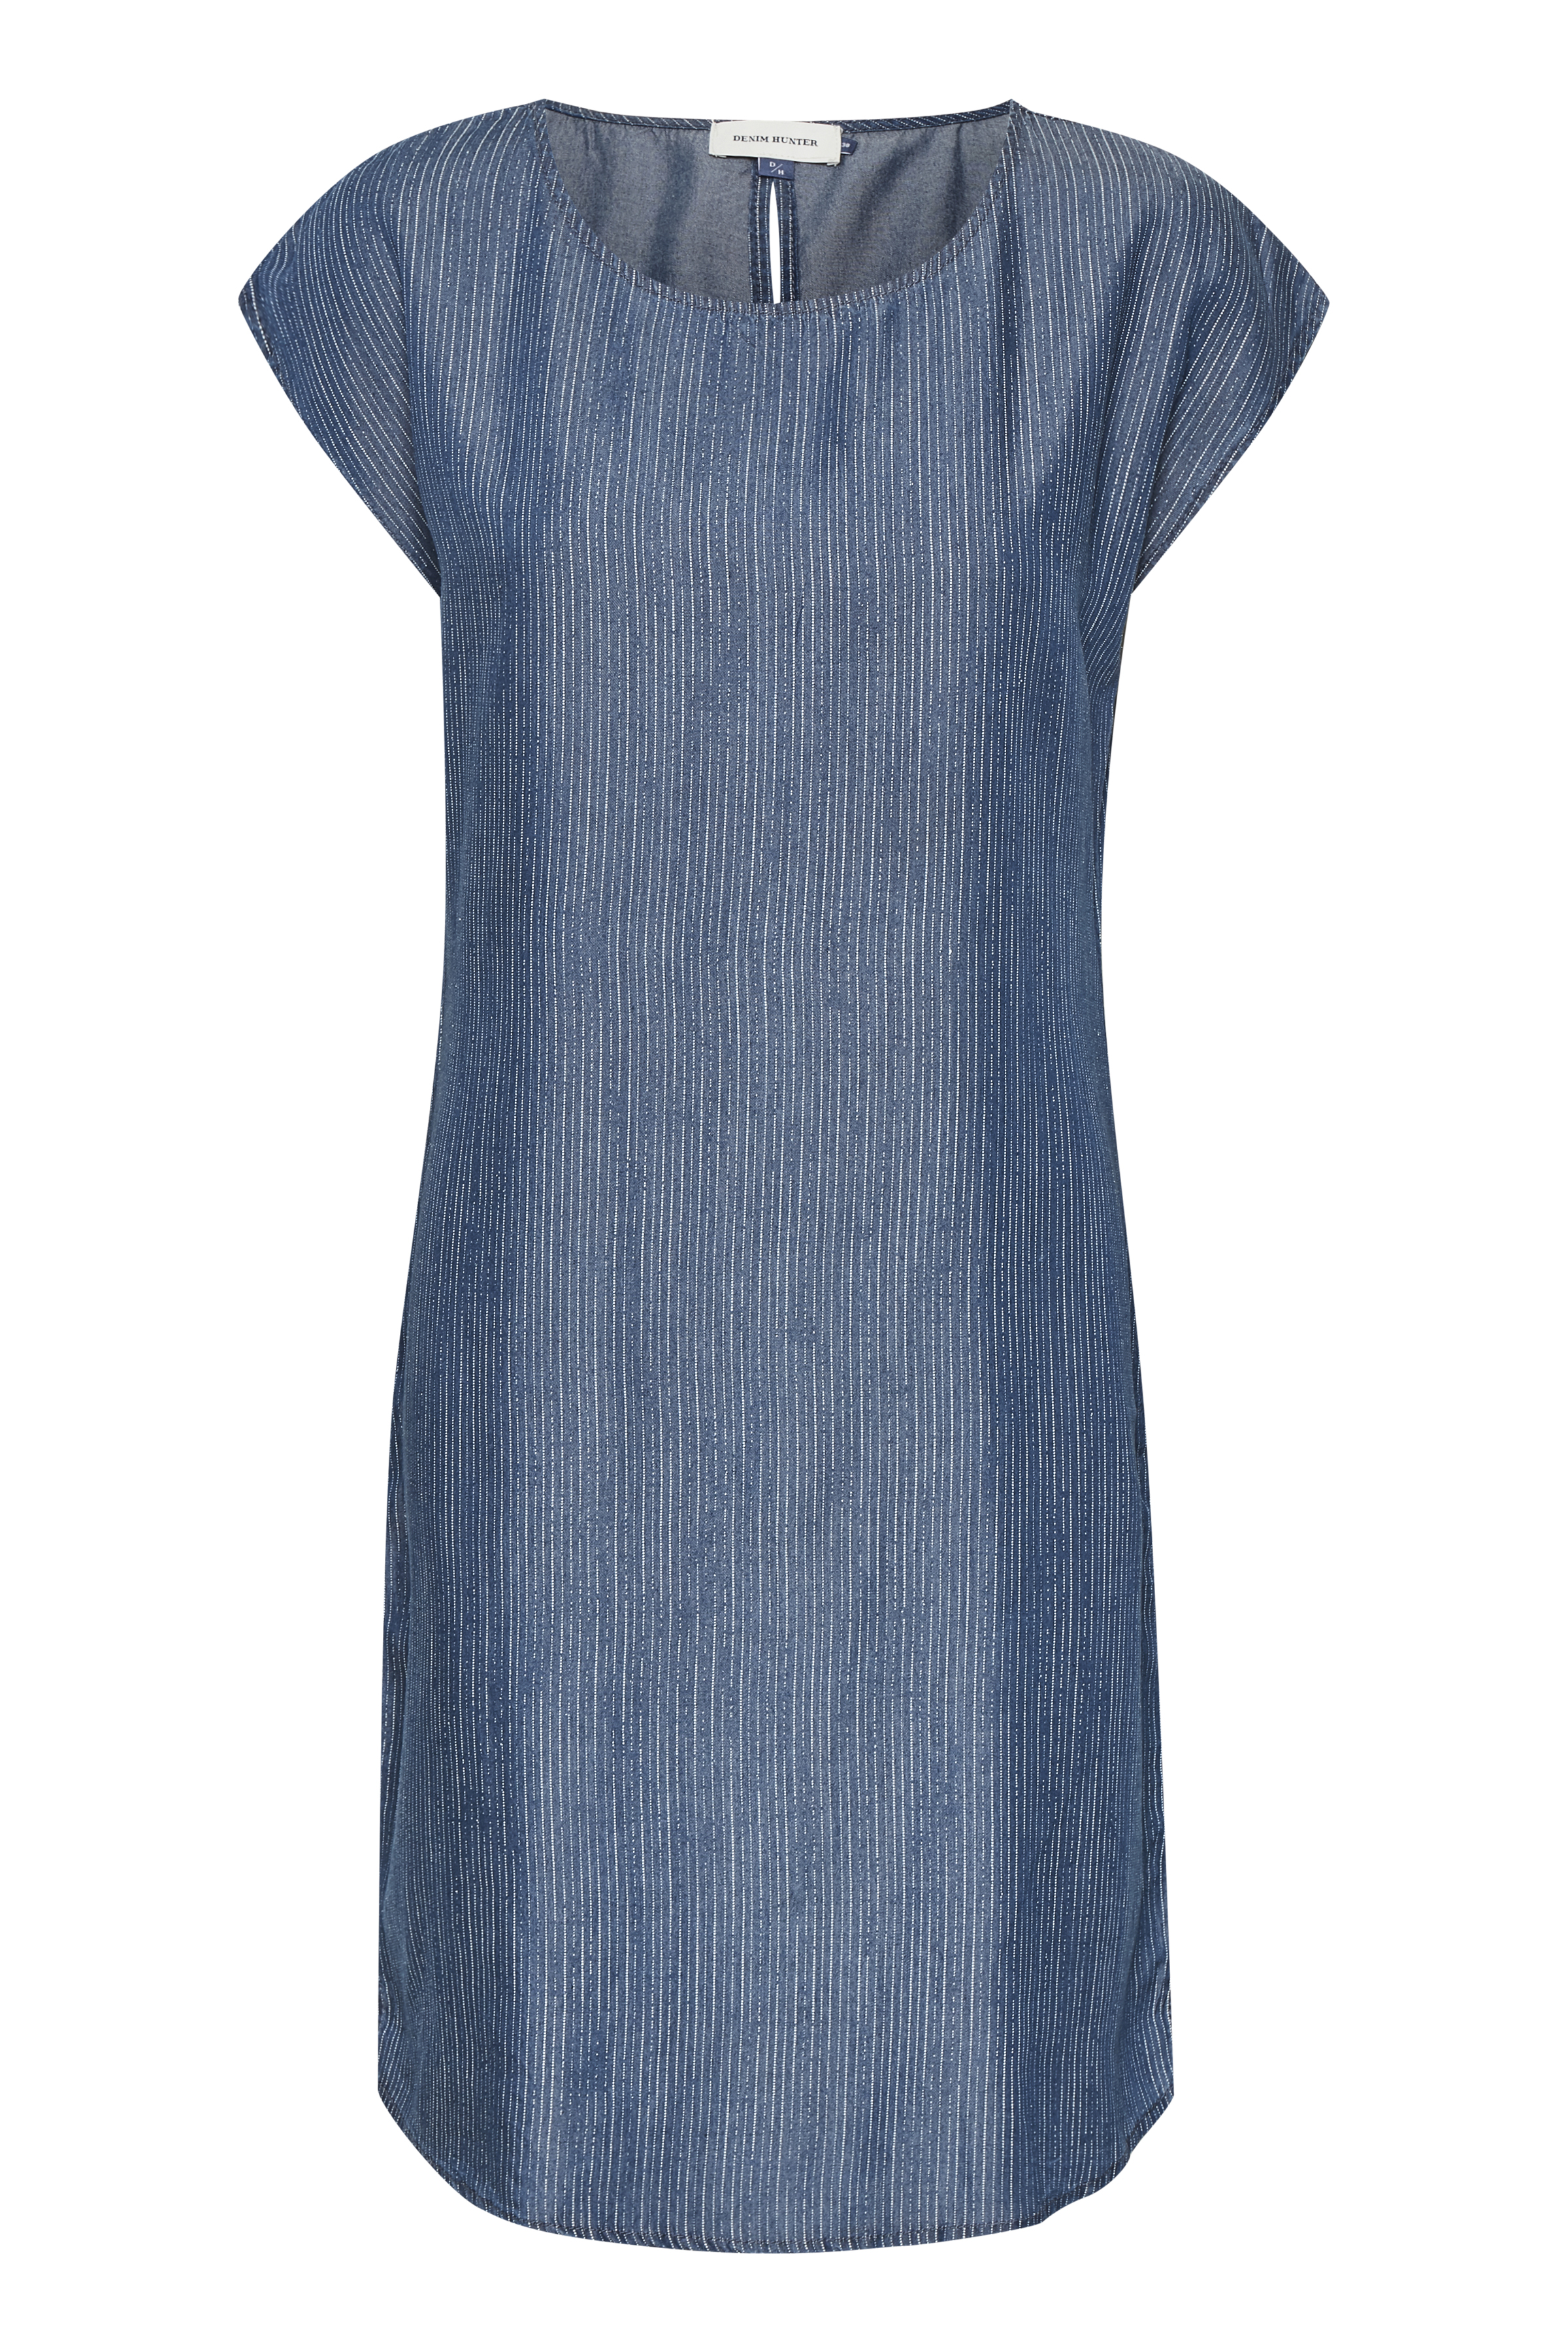 Denim hunter - Sørine Elma dress